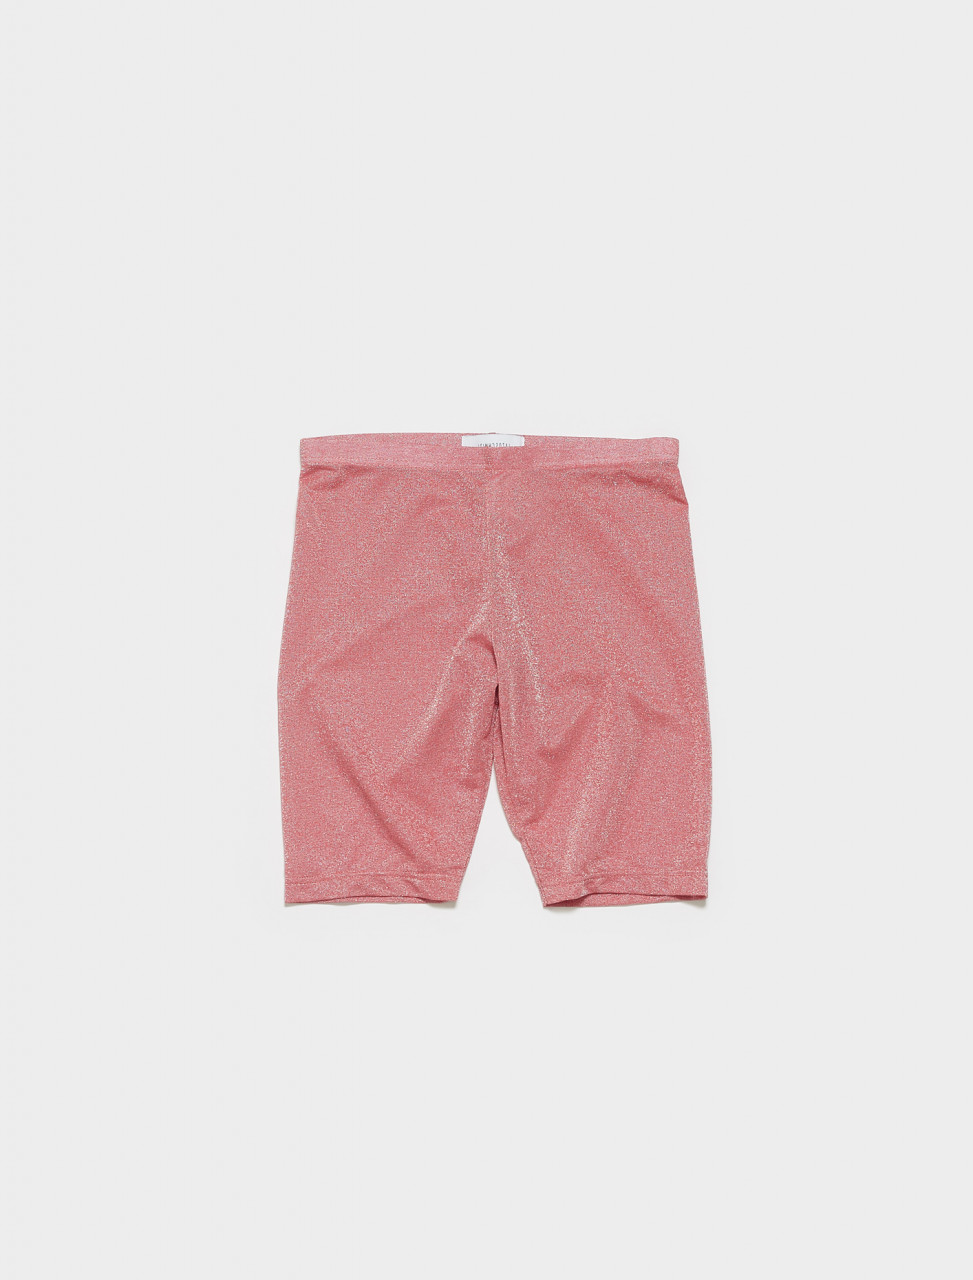 LSSS21-08-PIN LAZOSCHMIDL MICKY BIKER SHORTS IN PINK